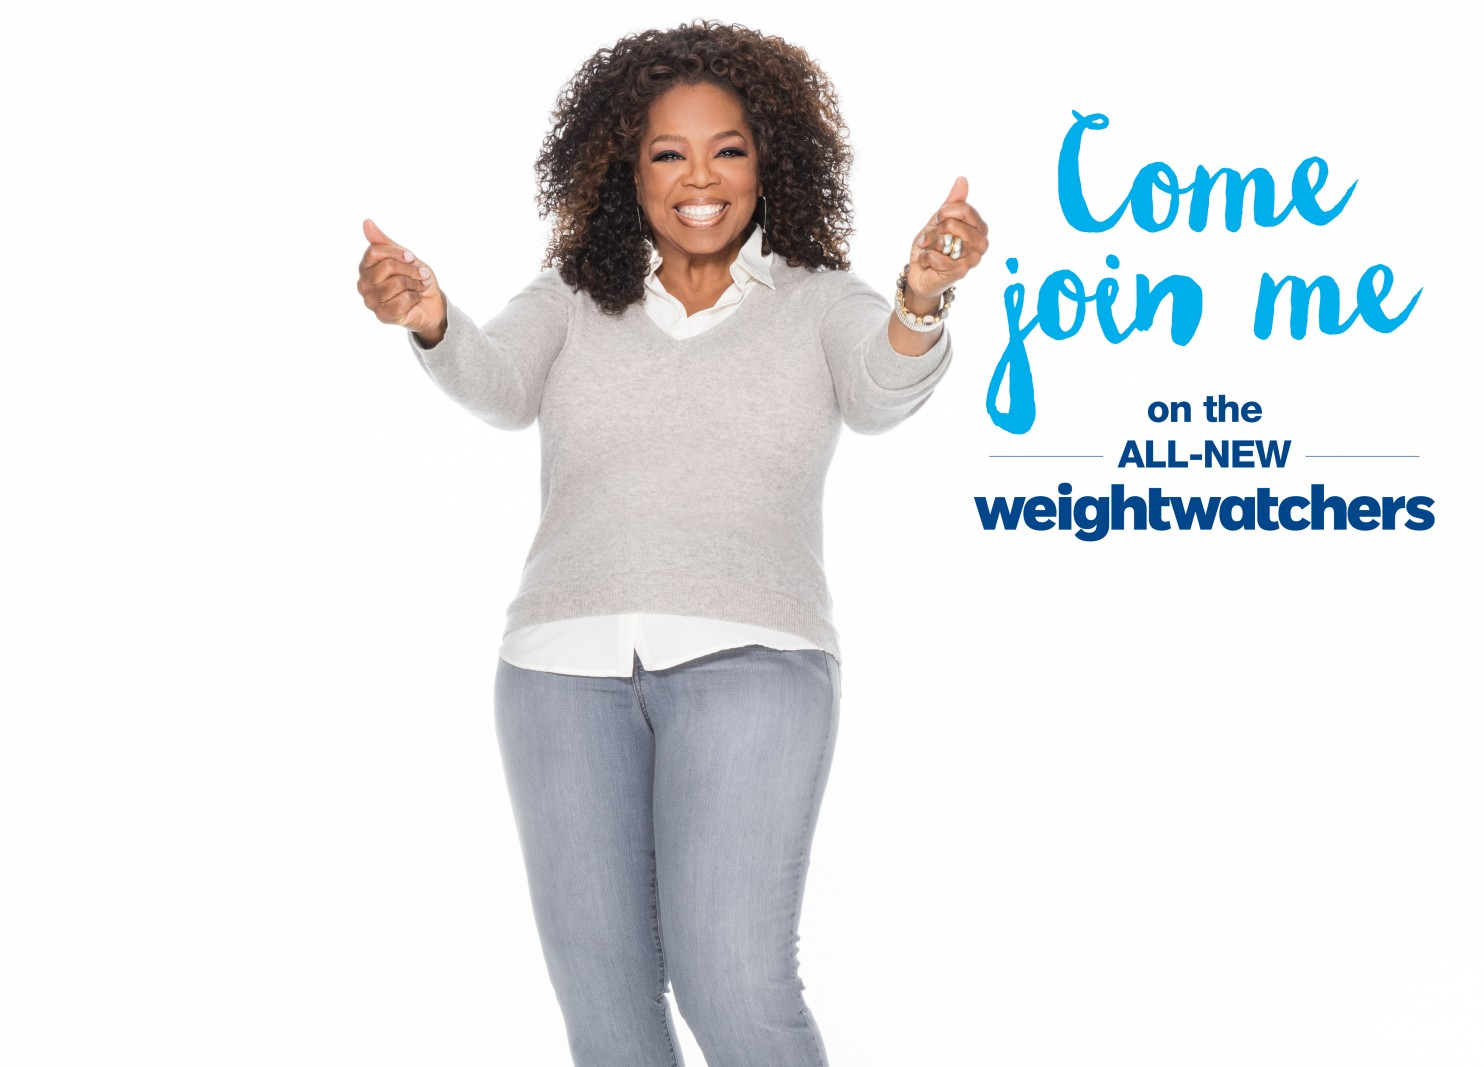 Oprah Weight Watchers.jpg